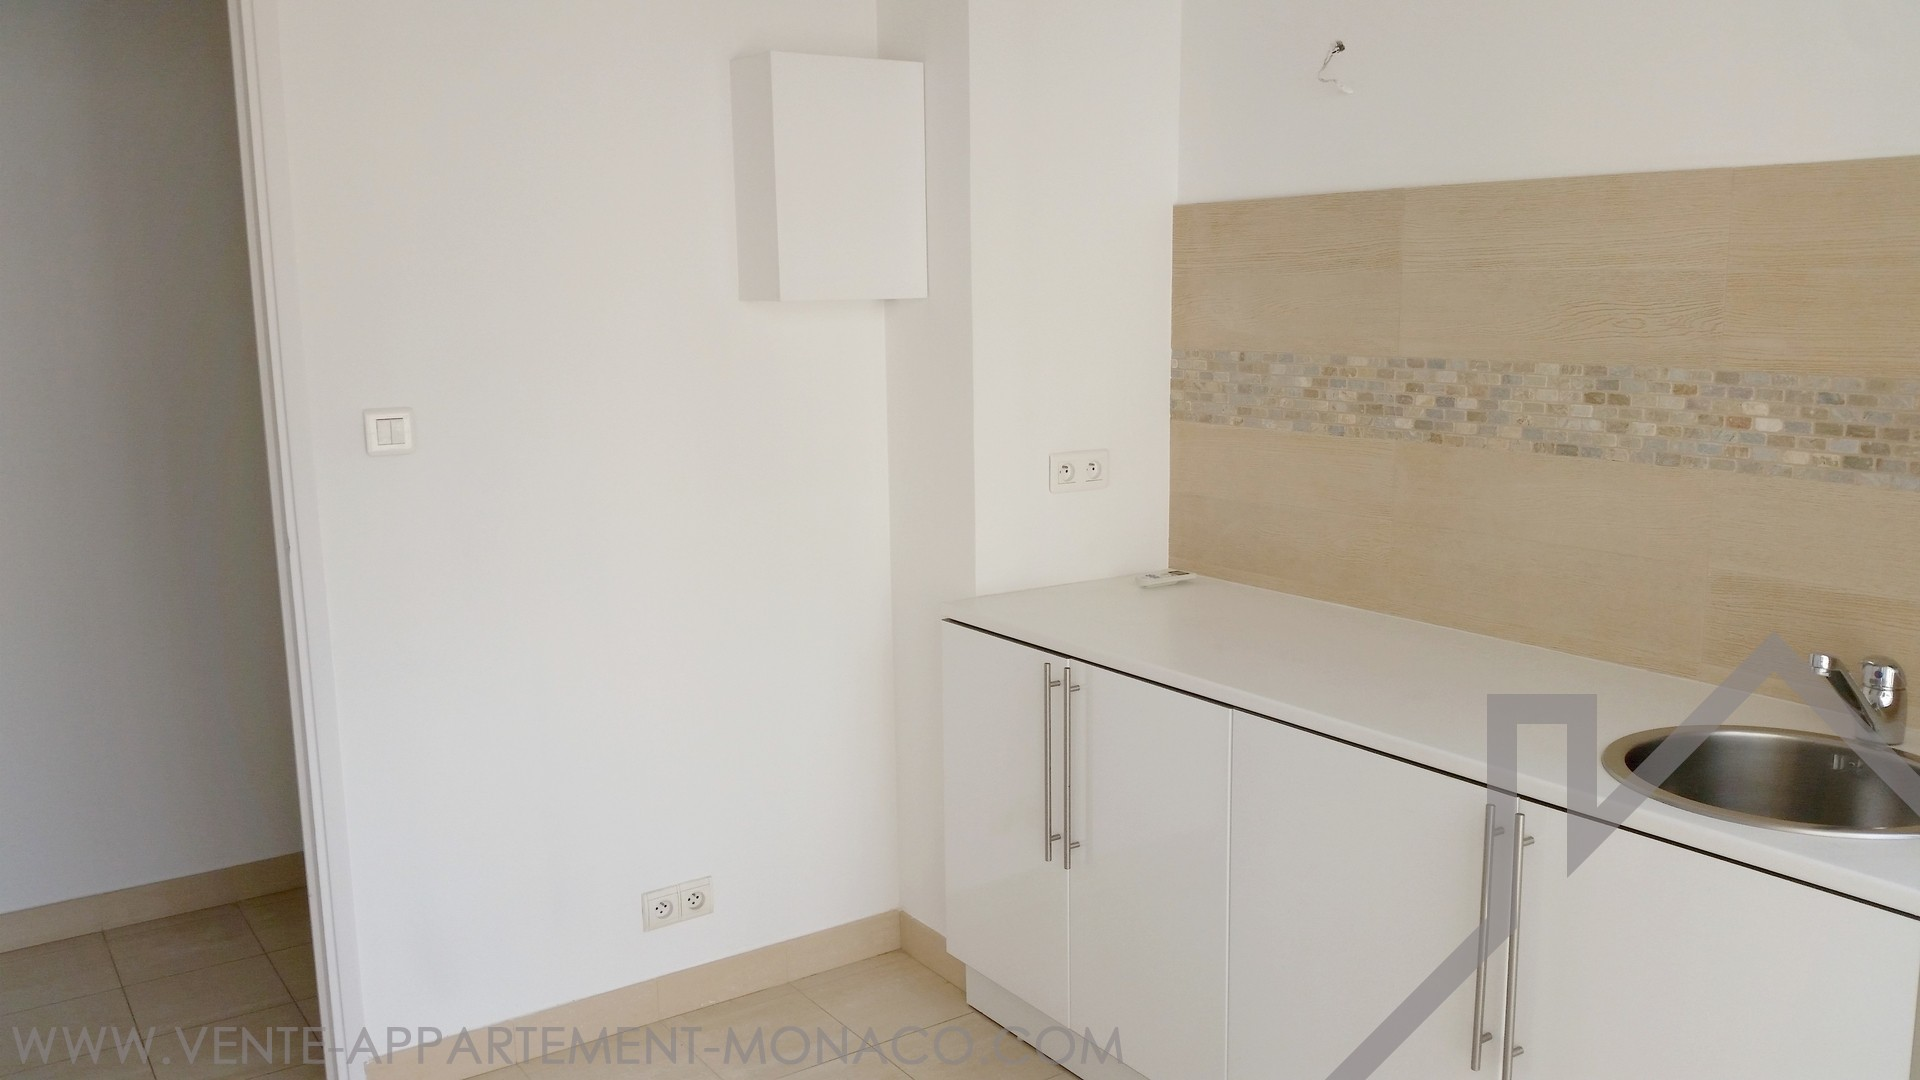 1 Bedroom Apartment Or Office In La Condamine Properties For Sale In Monaco